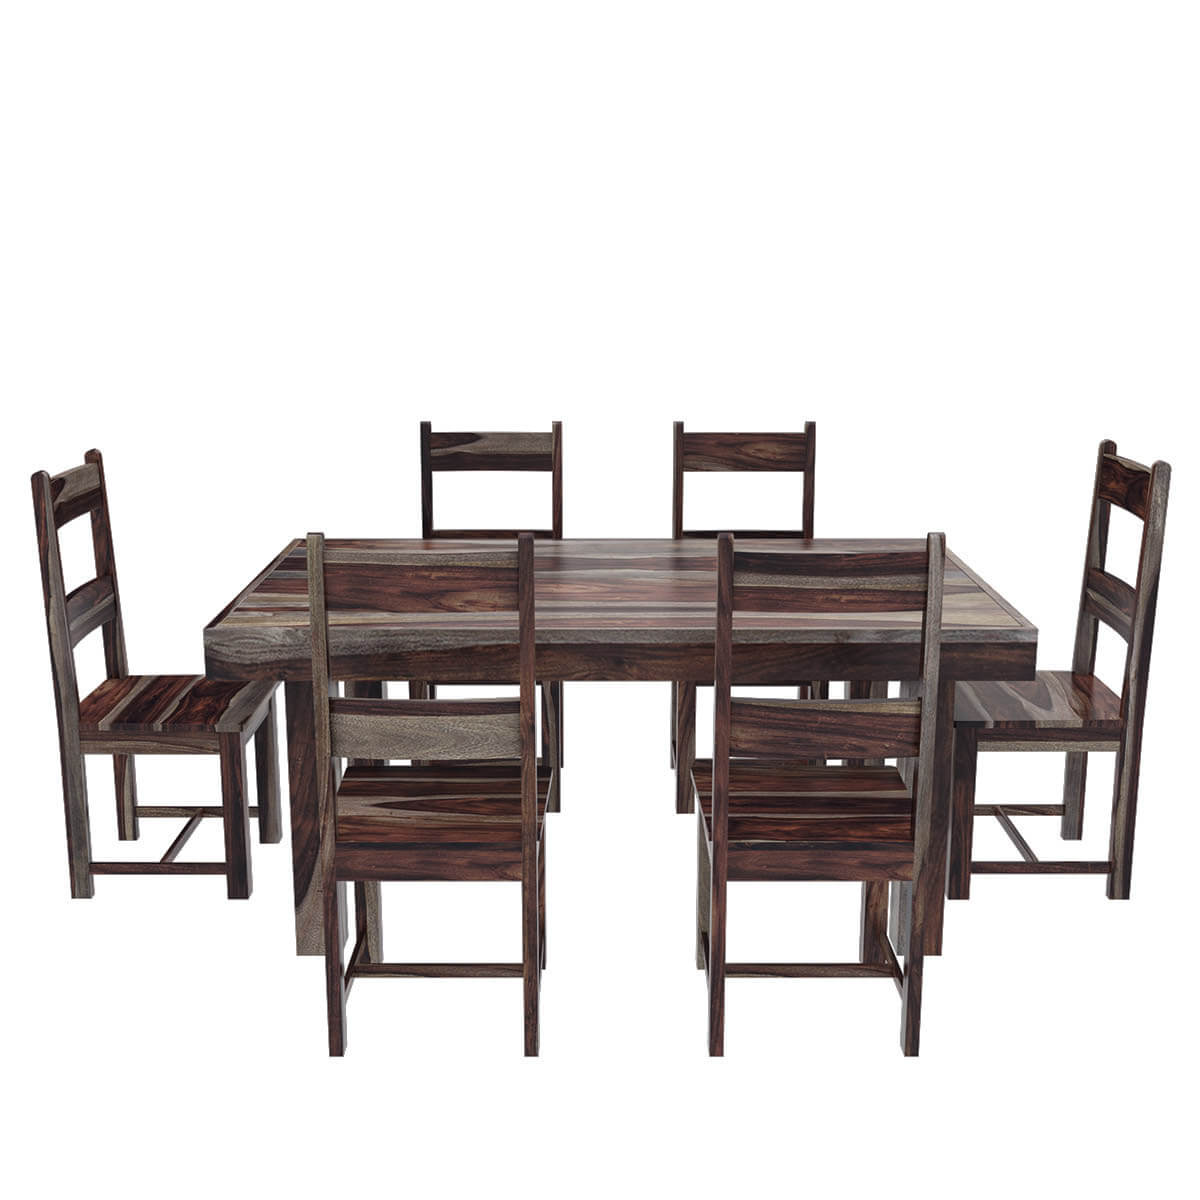 Frisco Modern Solid Wood Casual Rustic Dining Room Table ...